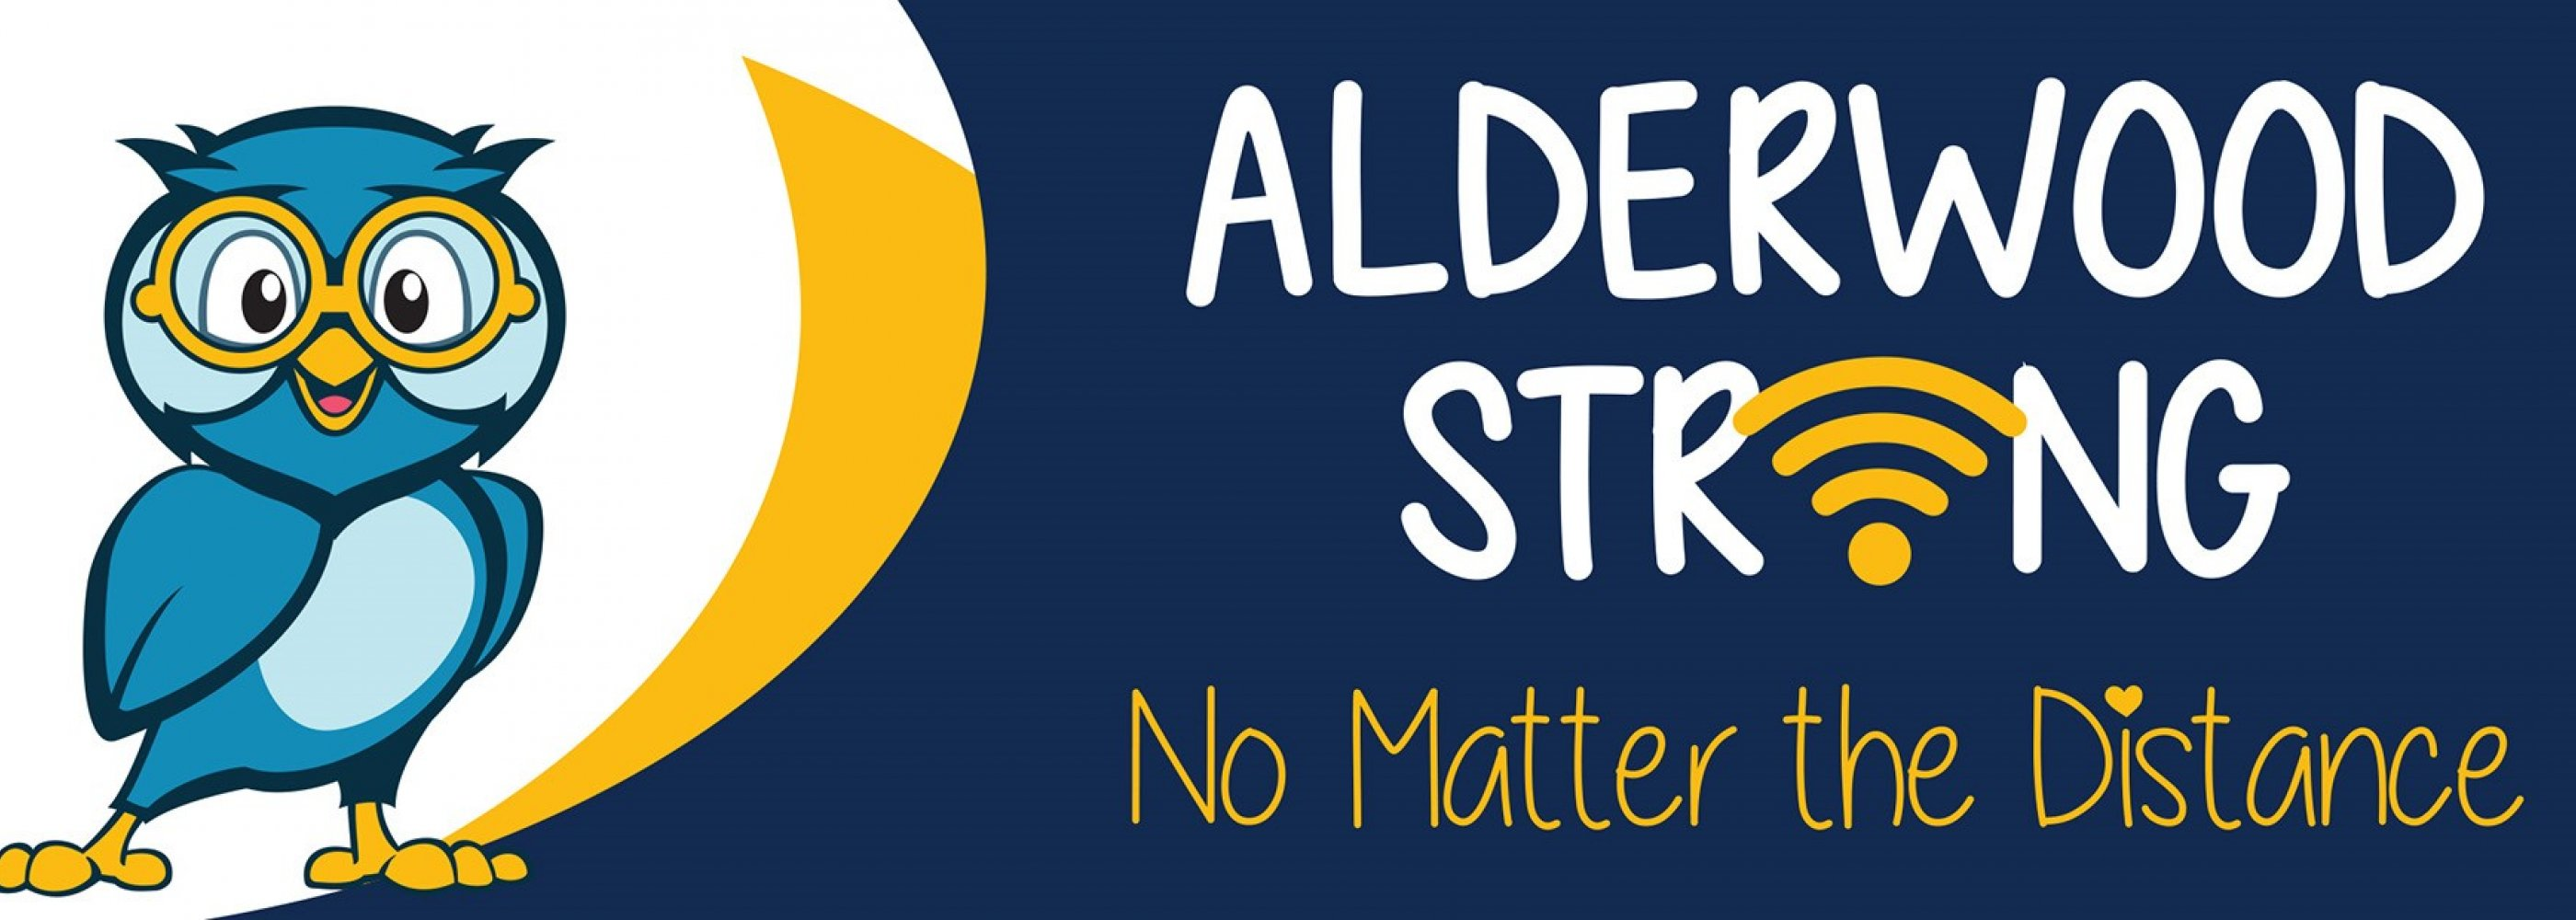 Alderwood Strong Owl Graphic